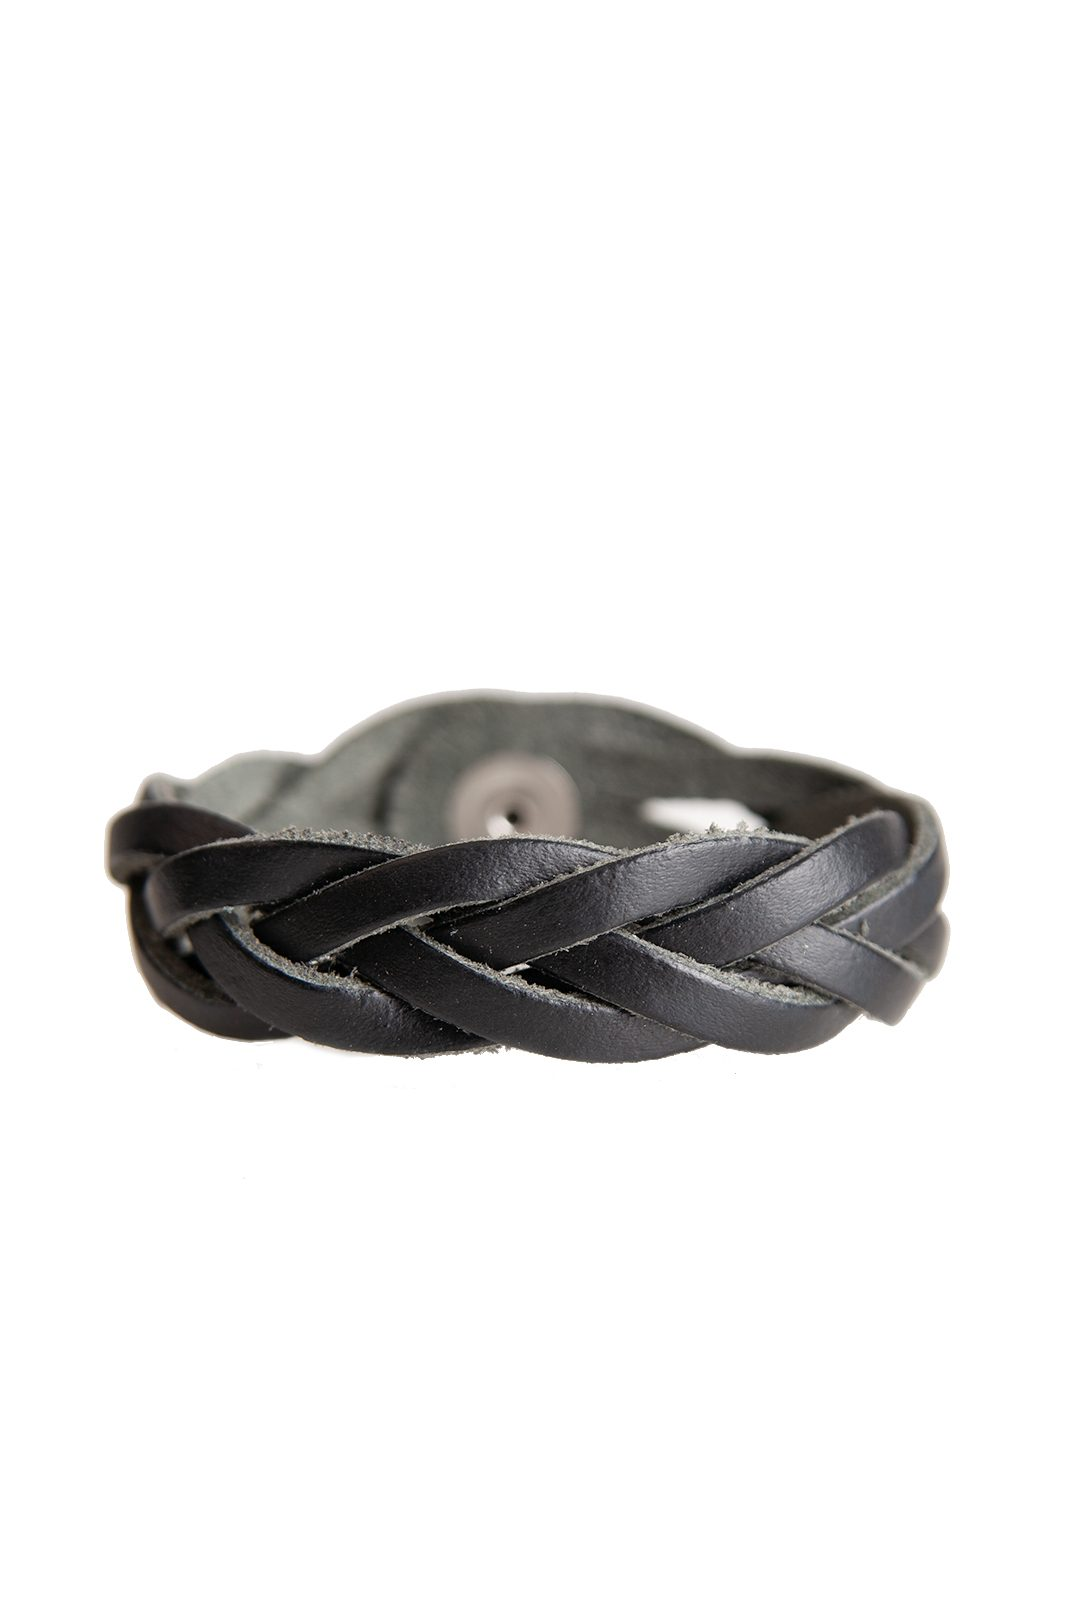 Black Weaved Leather Wristband